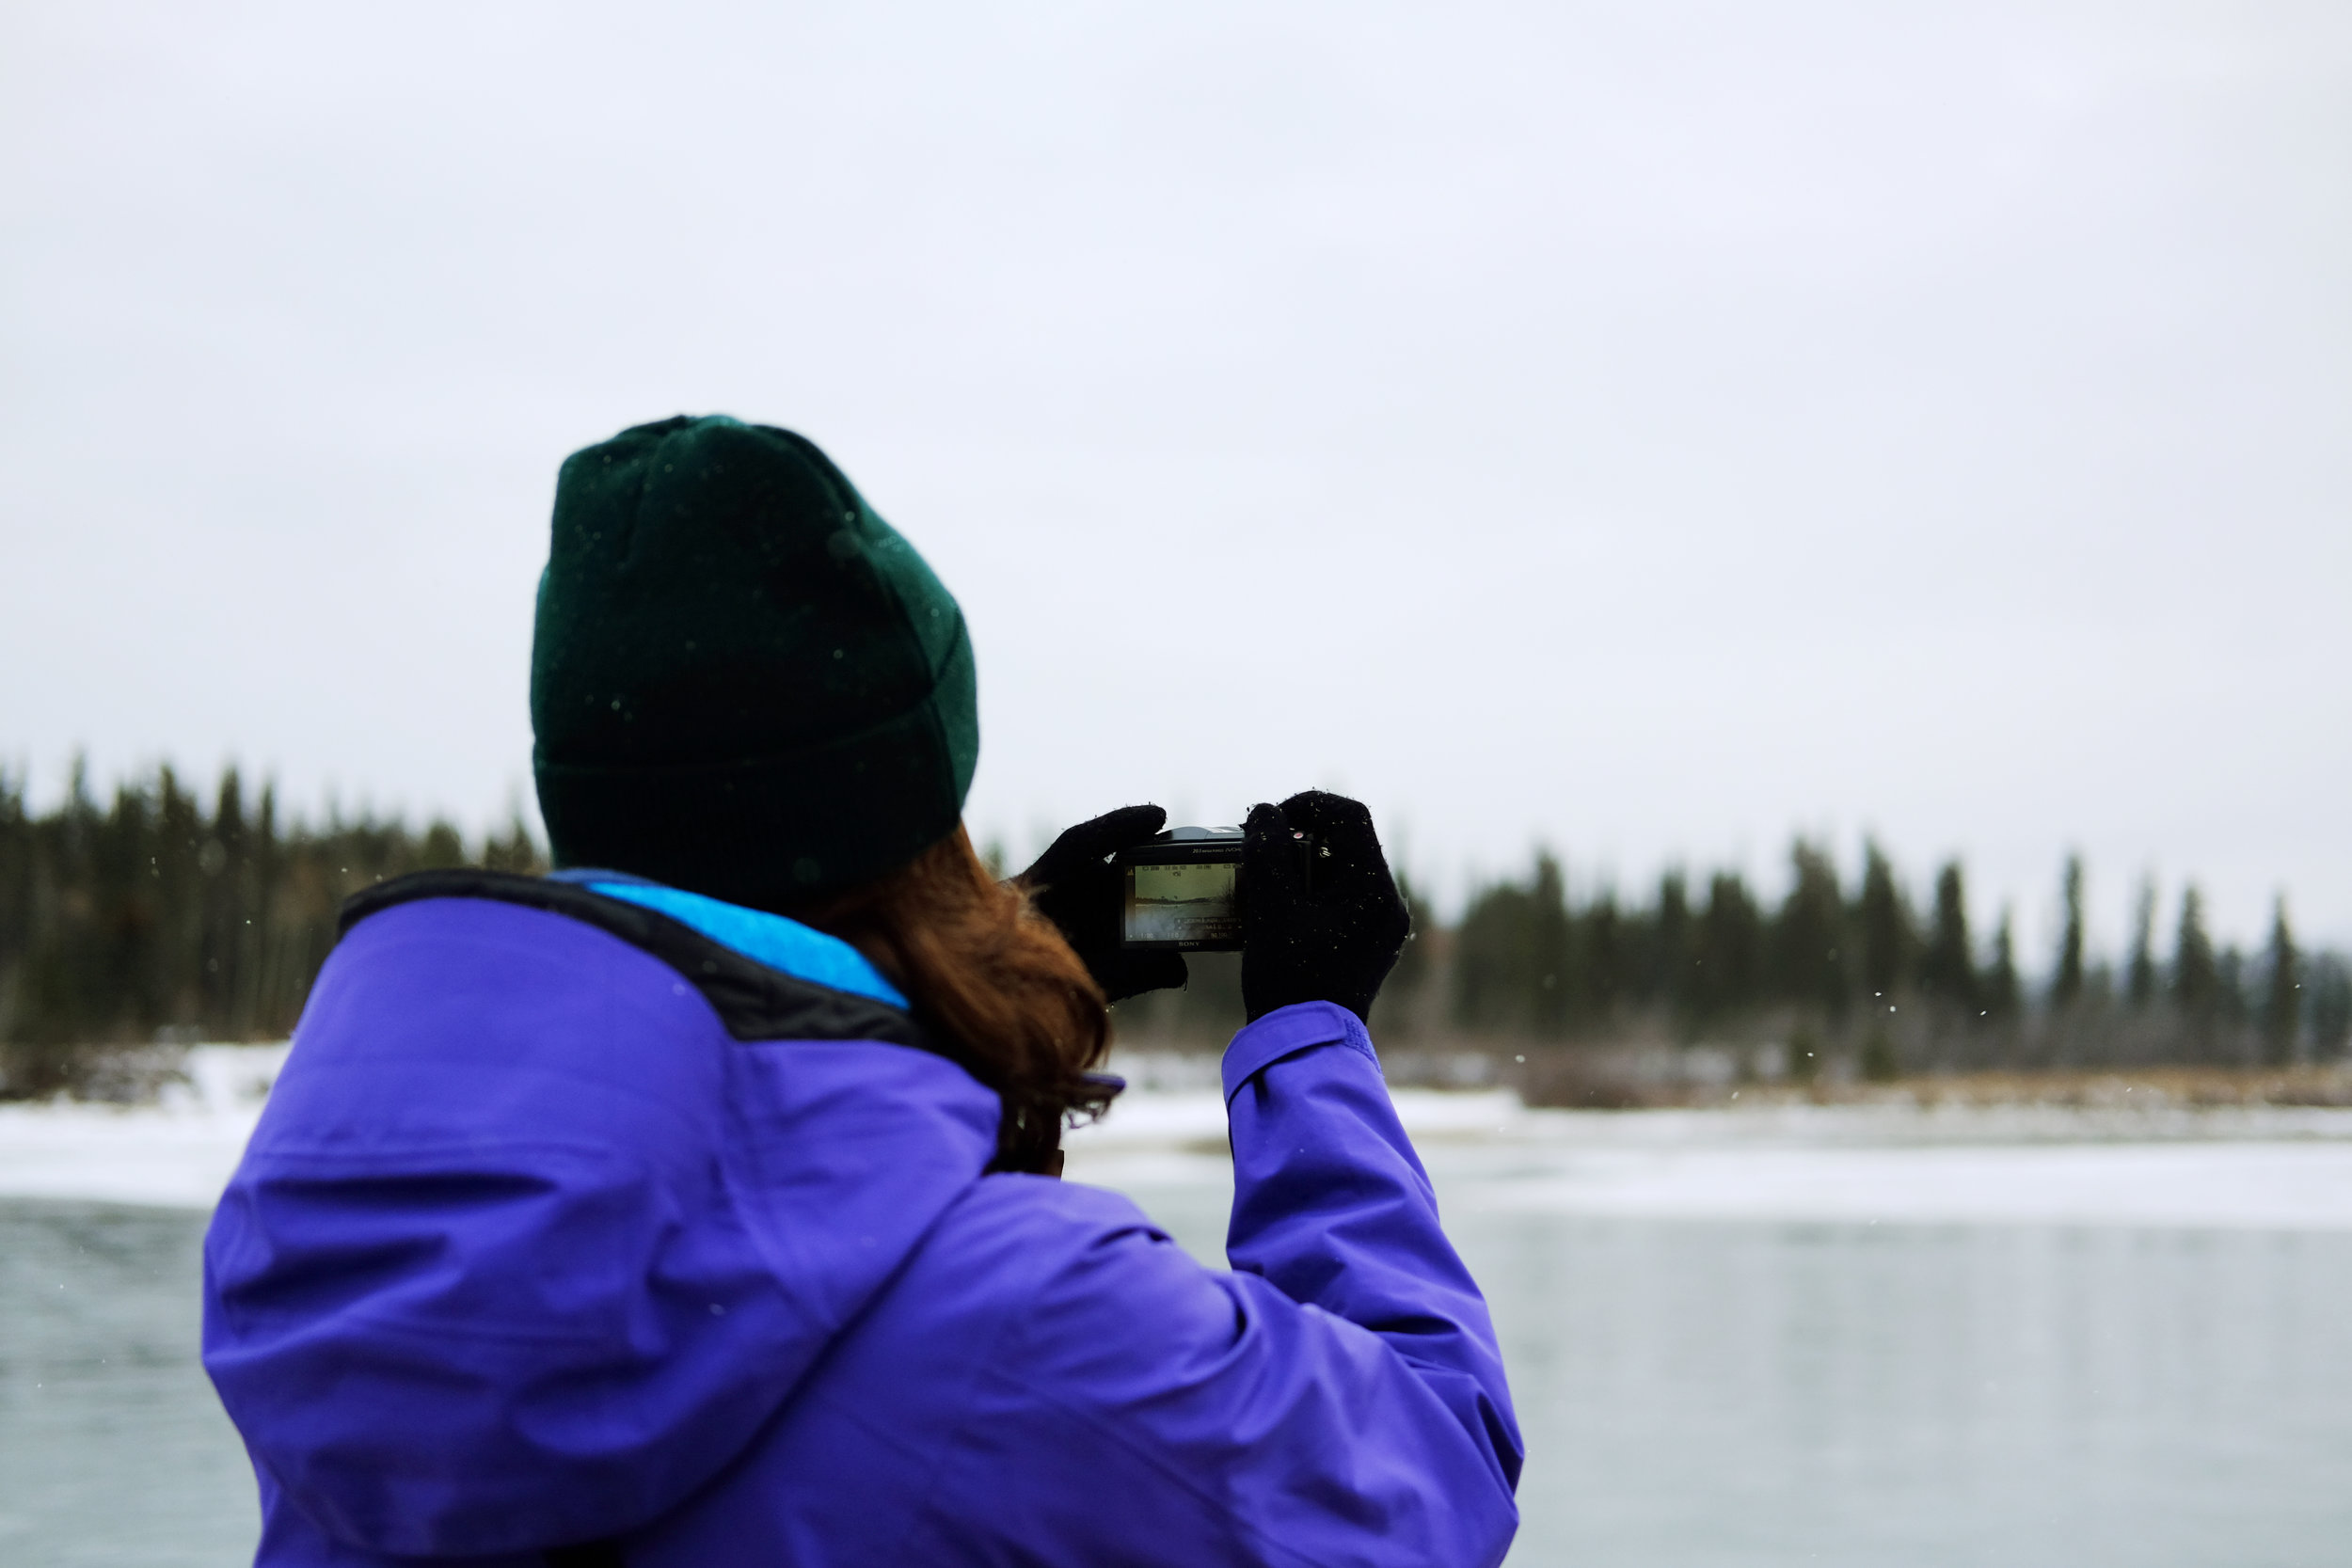 On our one day off, we decided to take a quick walk around town, making it down to the Yukon River.